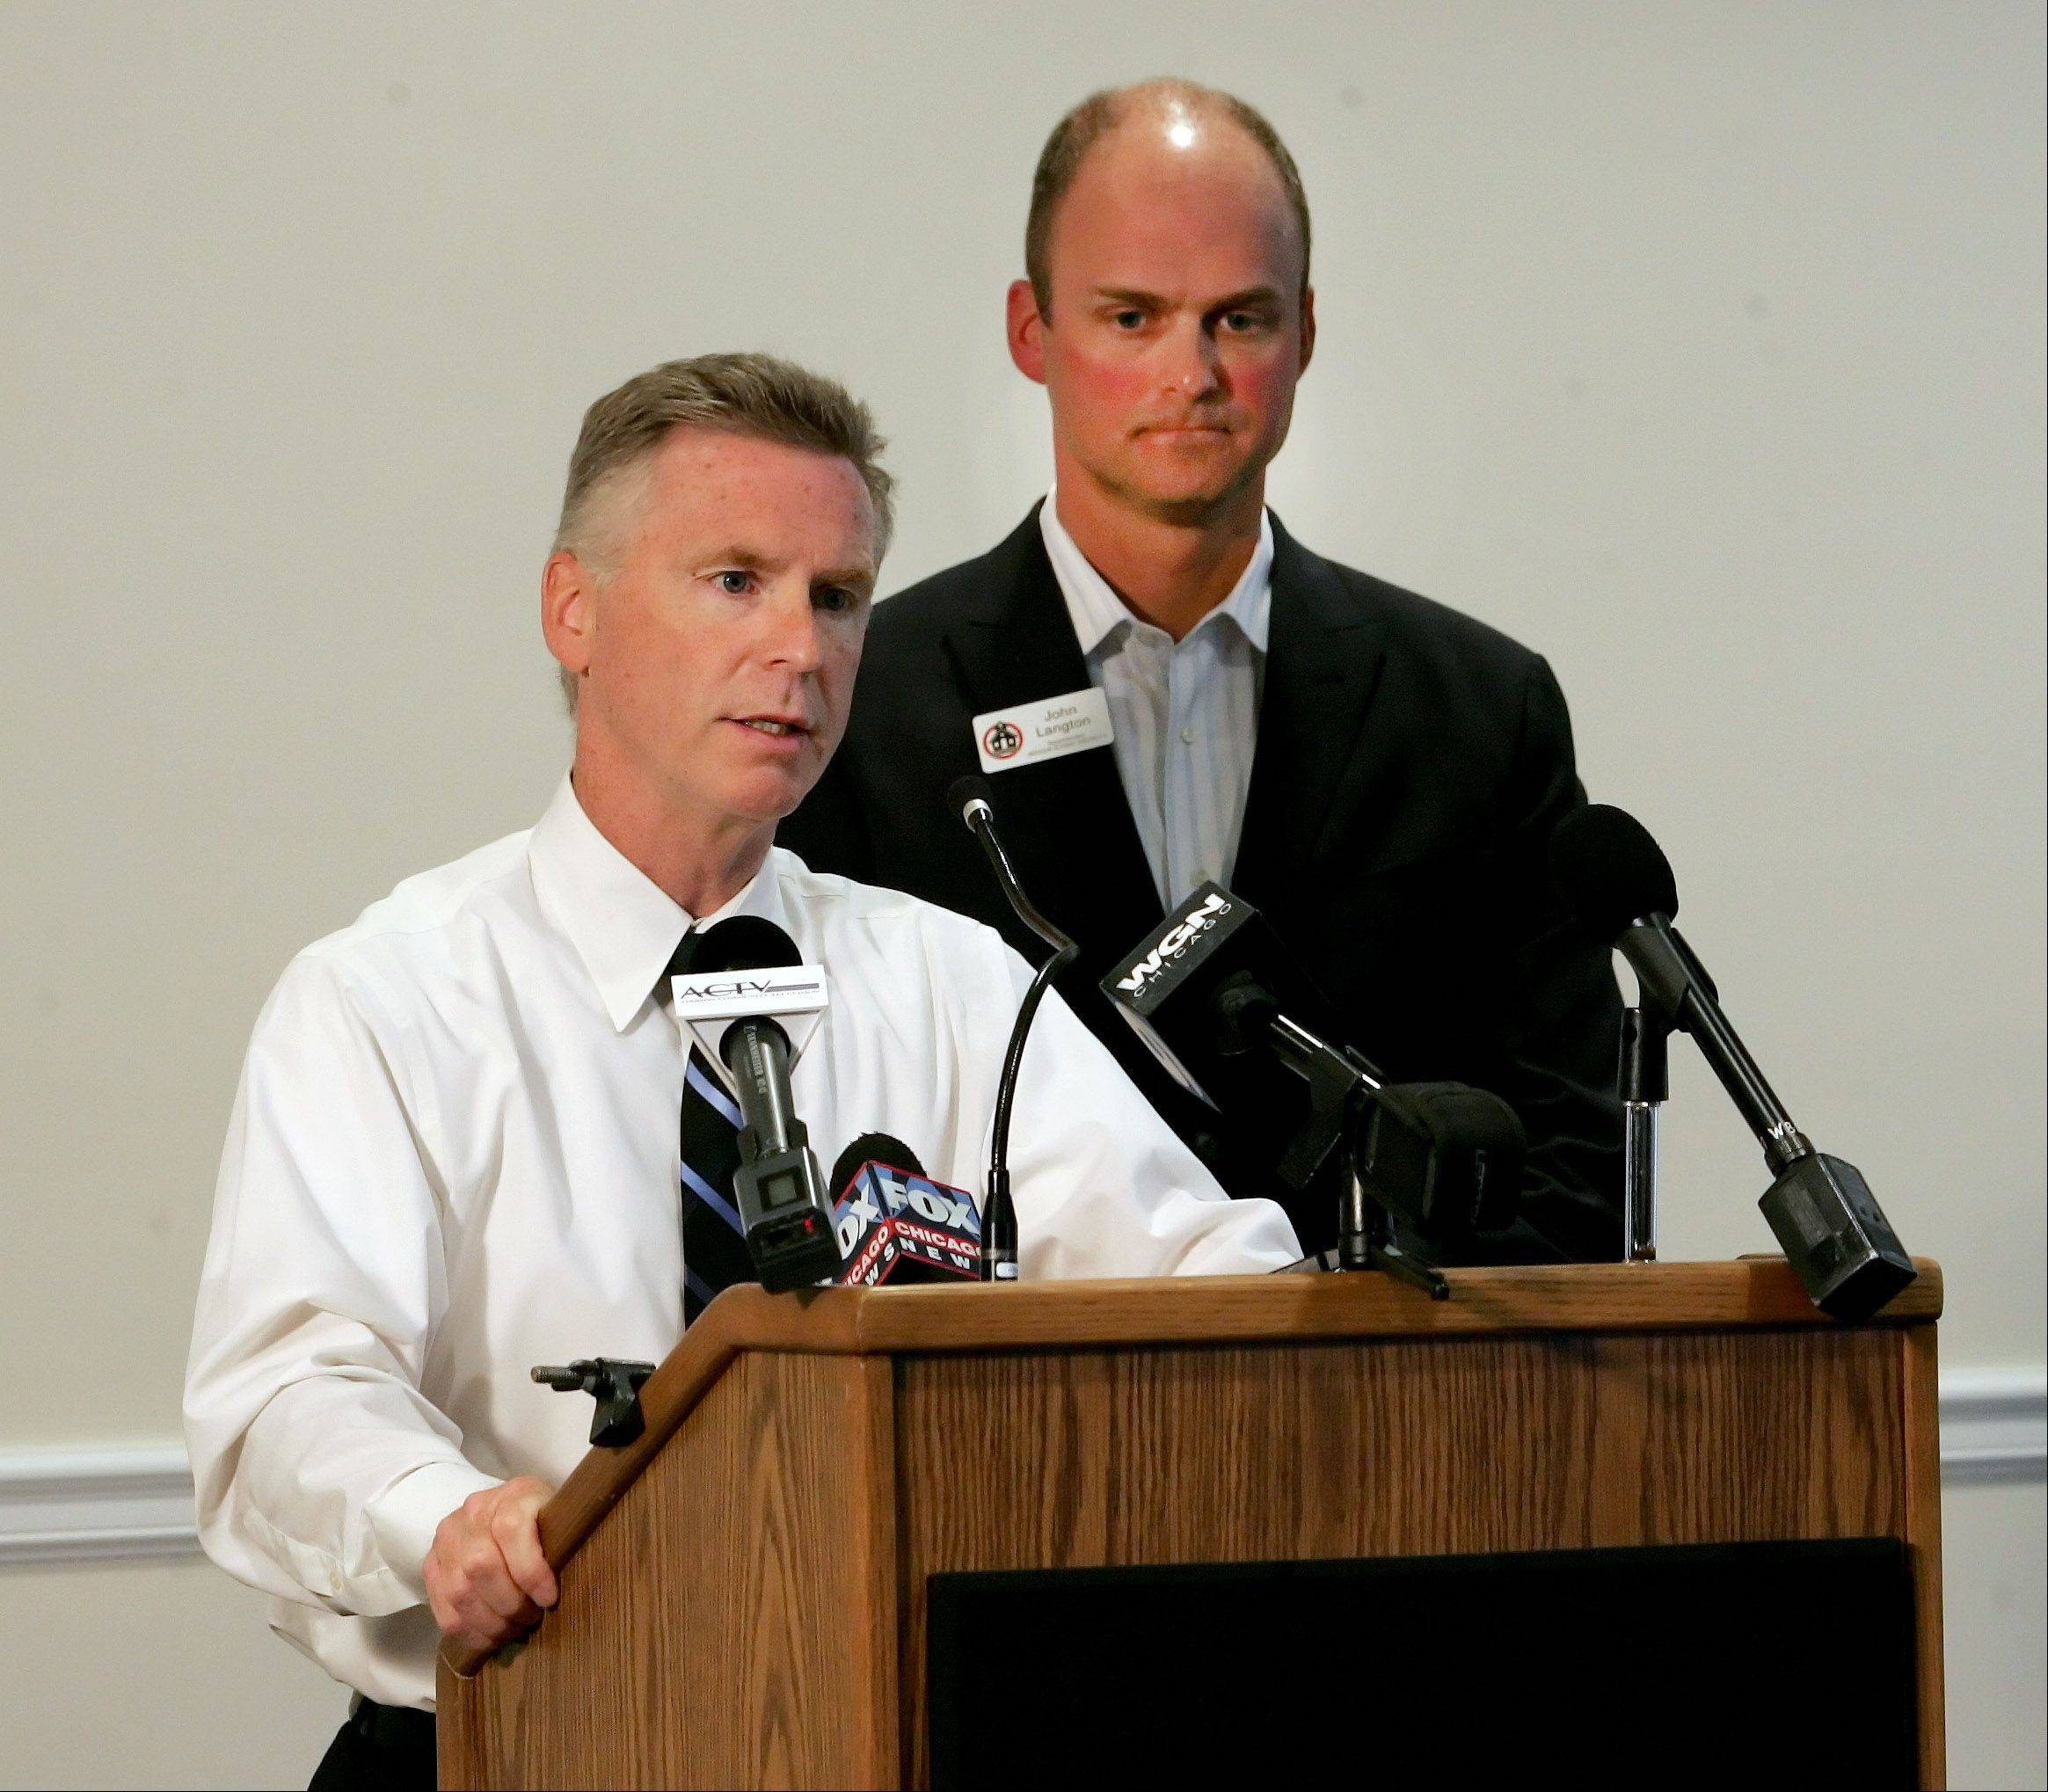 Addison Police Director Bill Hayden, left, and Addison Elementary District 4 Superintendent John Langton announce at a news conference Monday that a girl who claimed she was restrained in a junior high school bathroom admitted she made up the story.